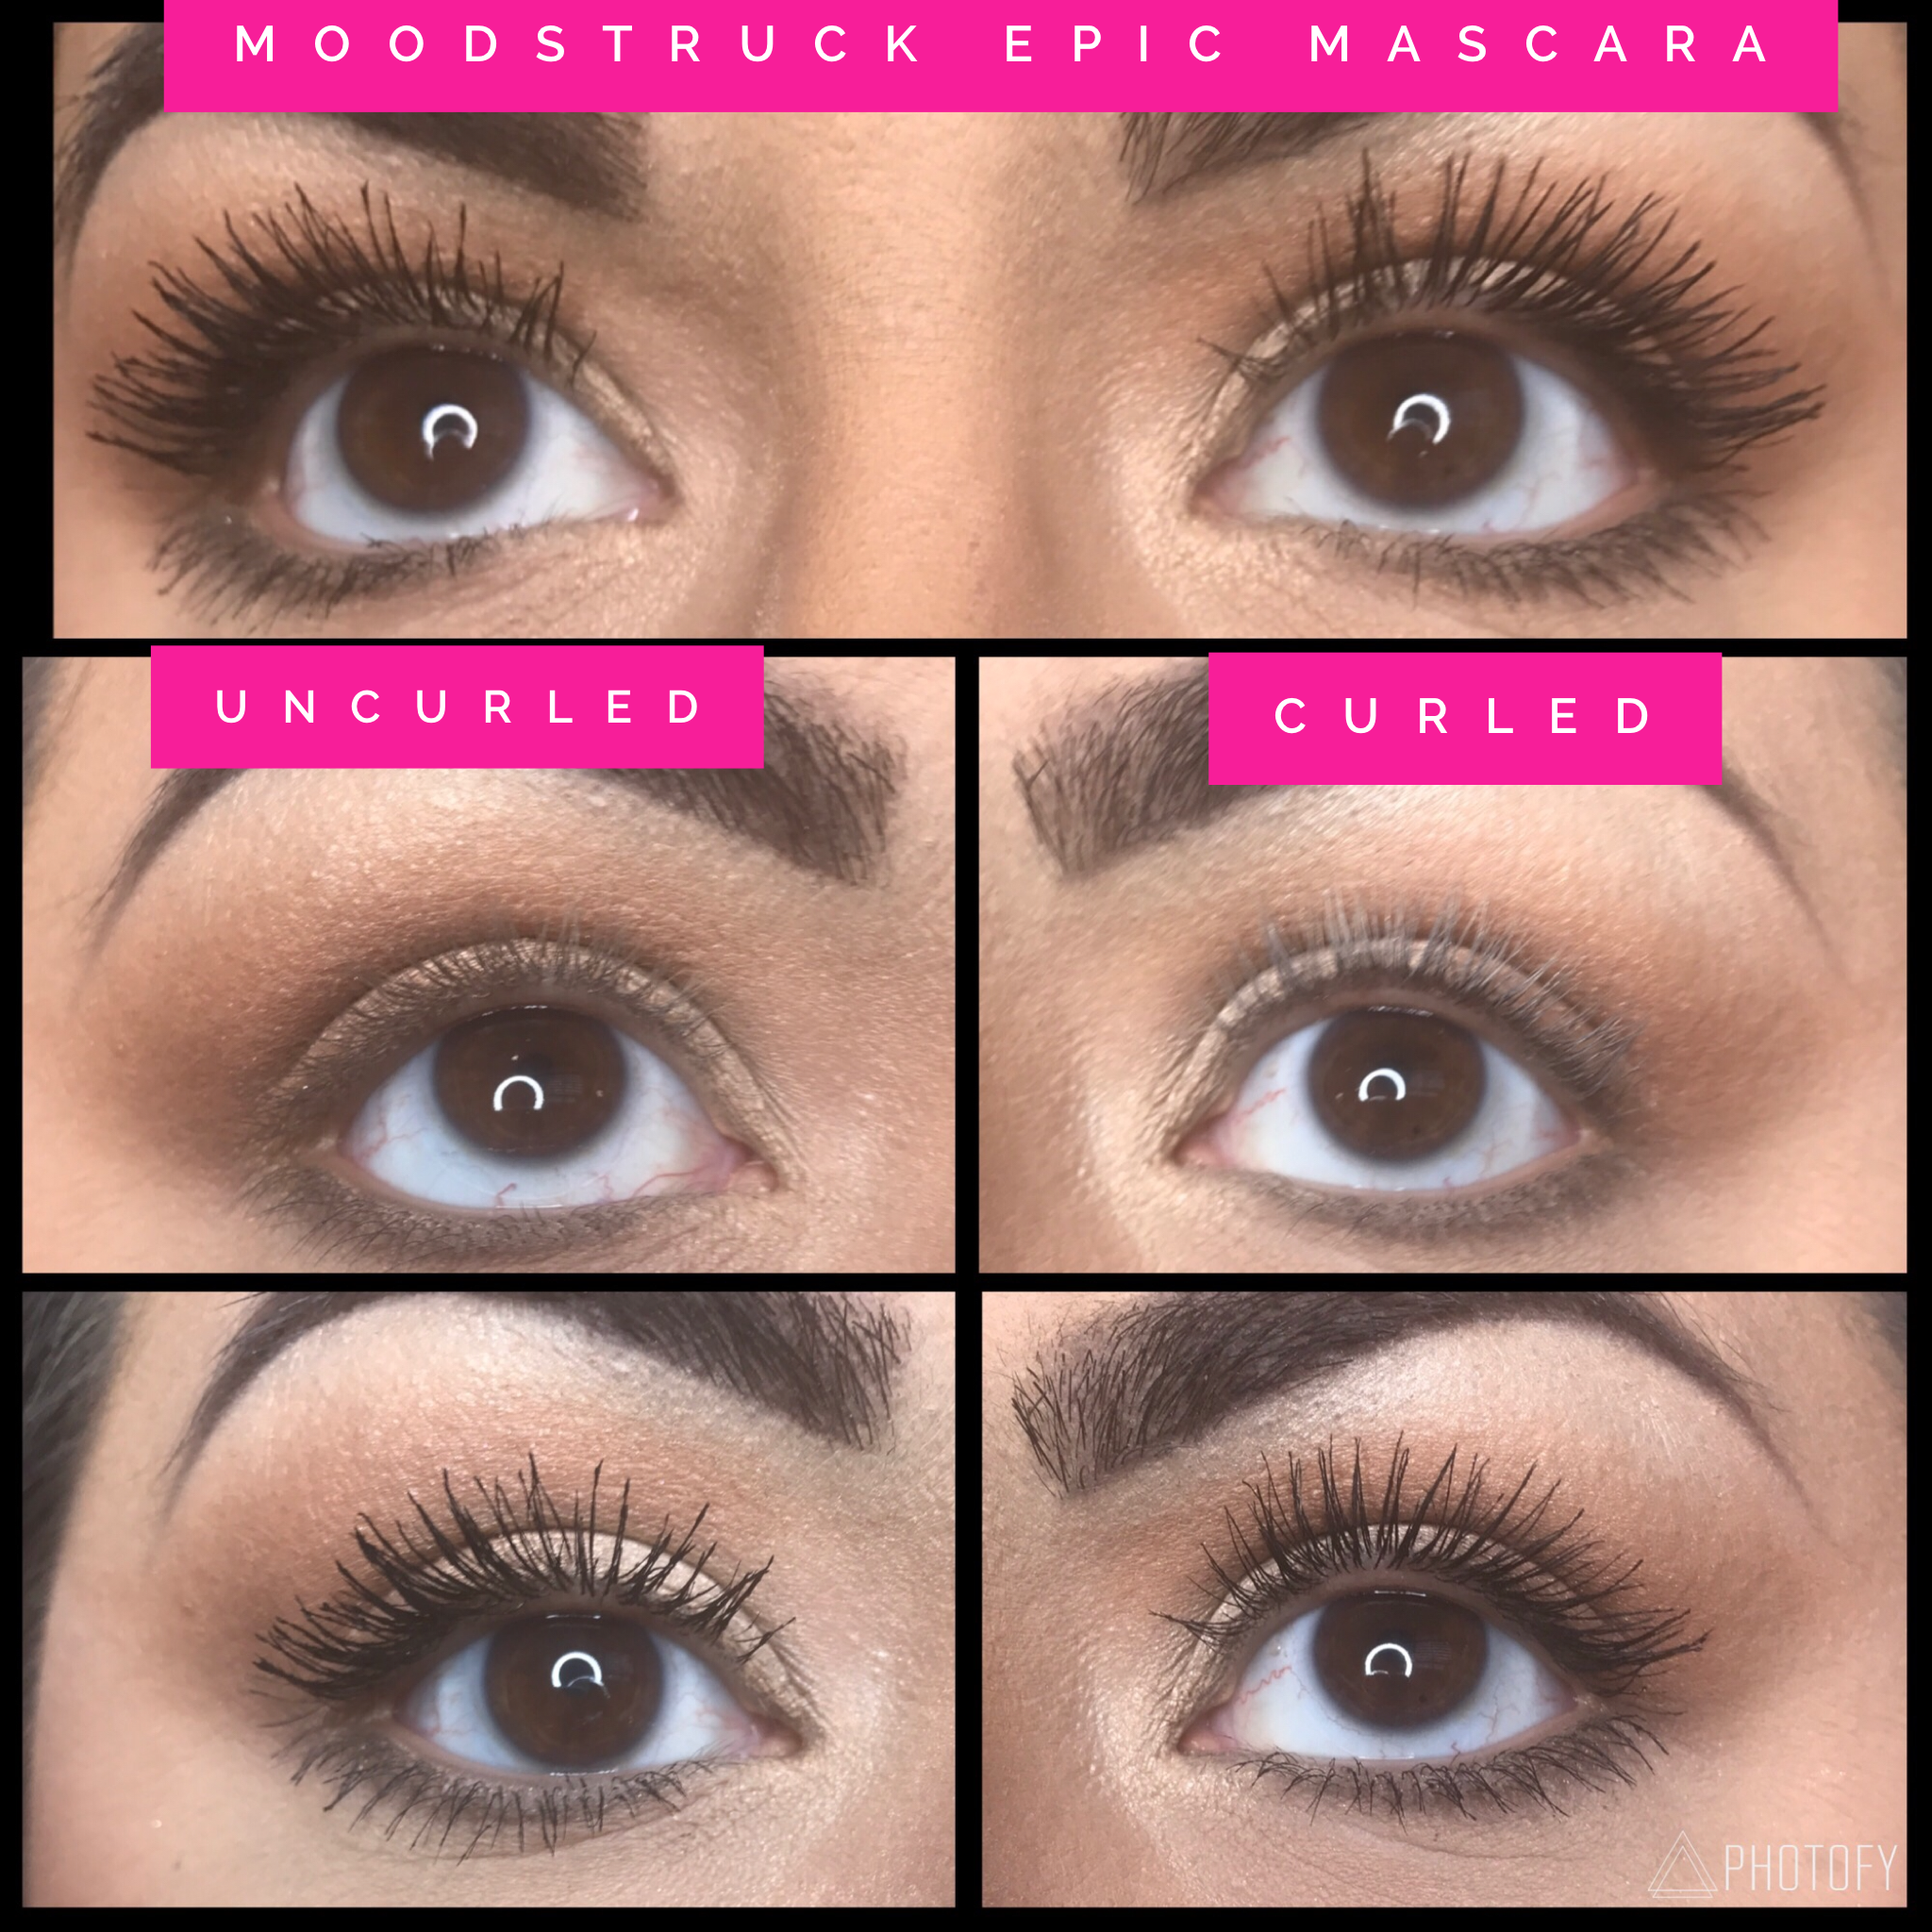 4952f37d0bc NEW Moodstruck Epic Mascara! This awesome one-step mascara will take your  lashes from boring to va-va-voom!!! $24 #lashes #epic #mascara #younique  #musthave ...